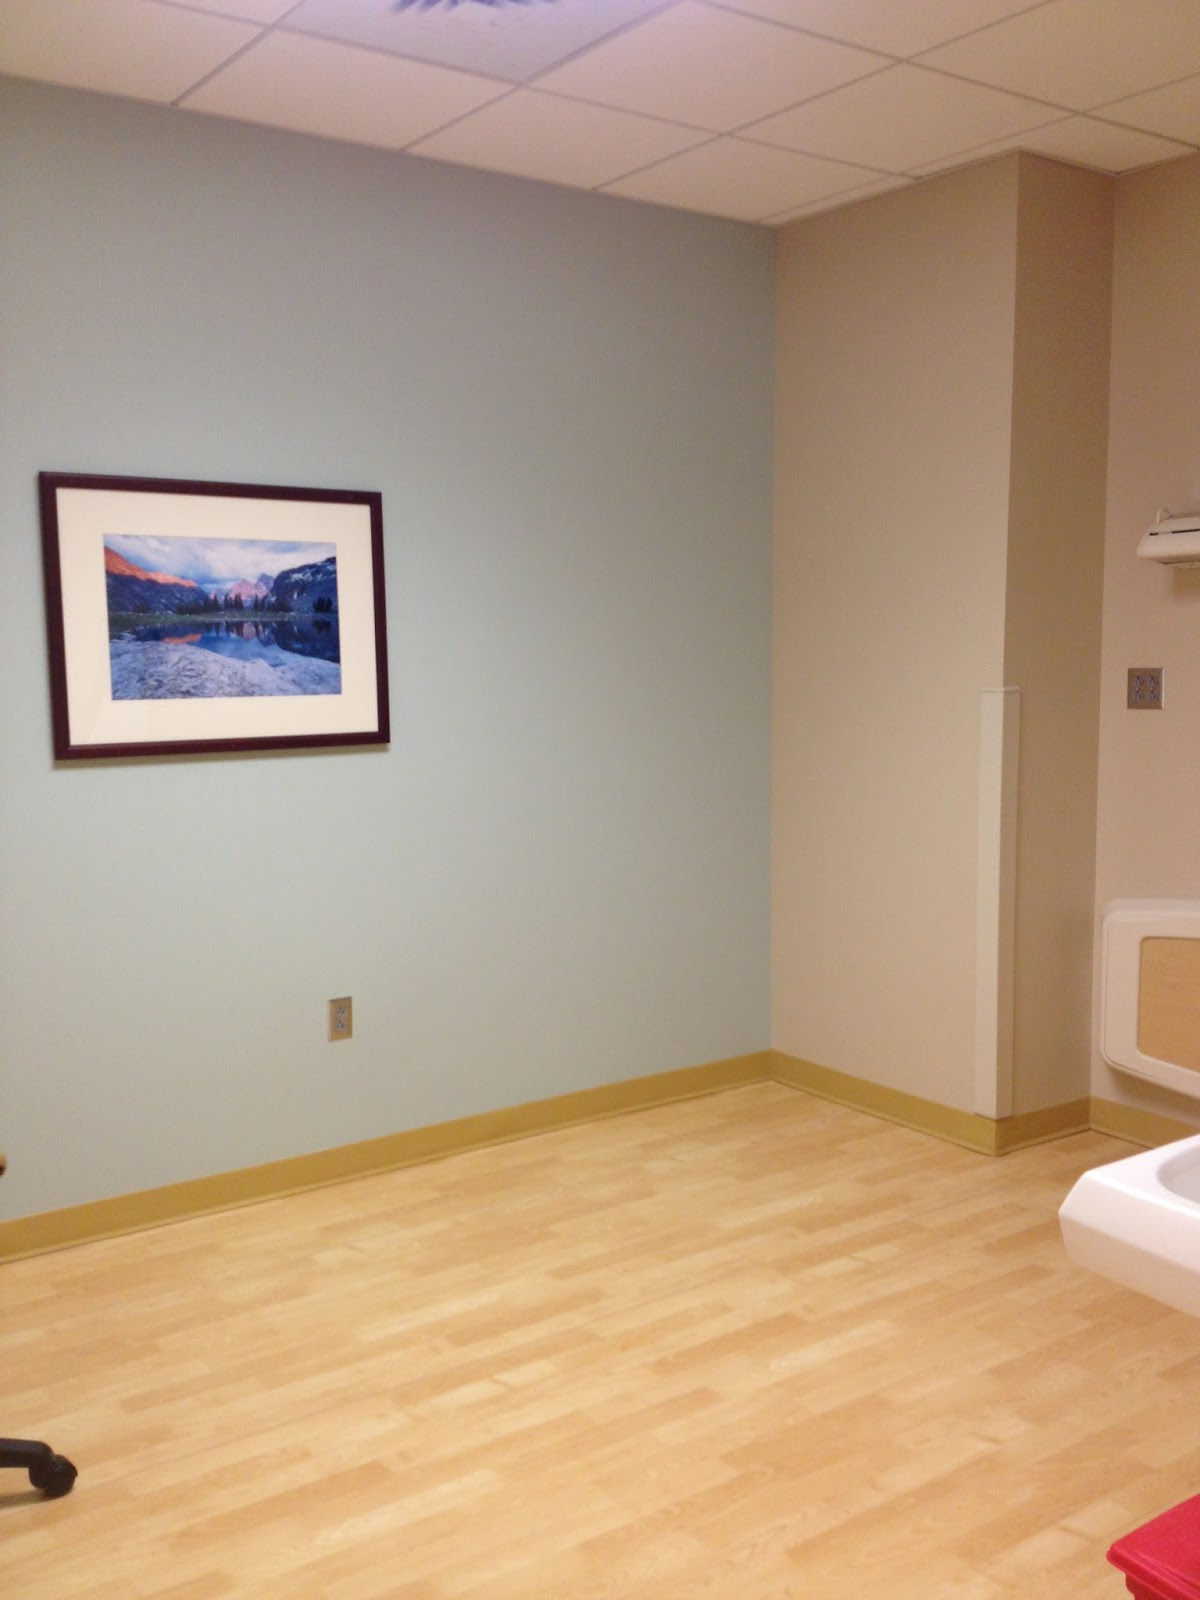 Patient Room Design: A Day In The Life: Amy Varner, Interior Design Student